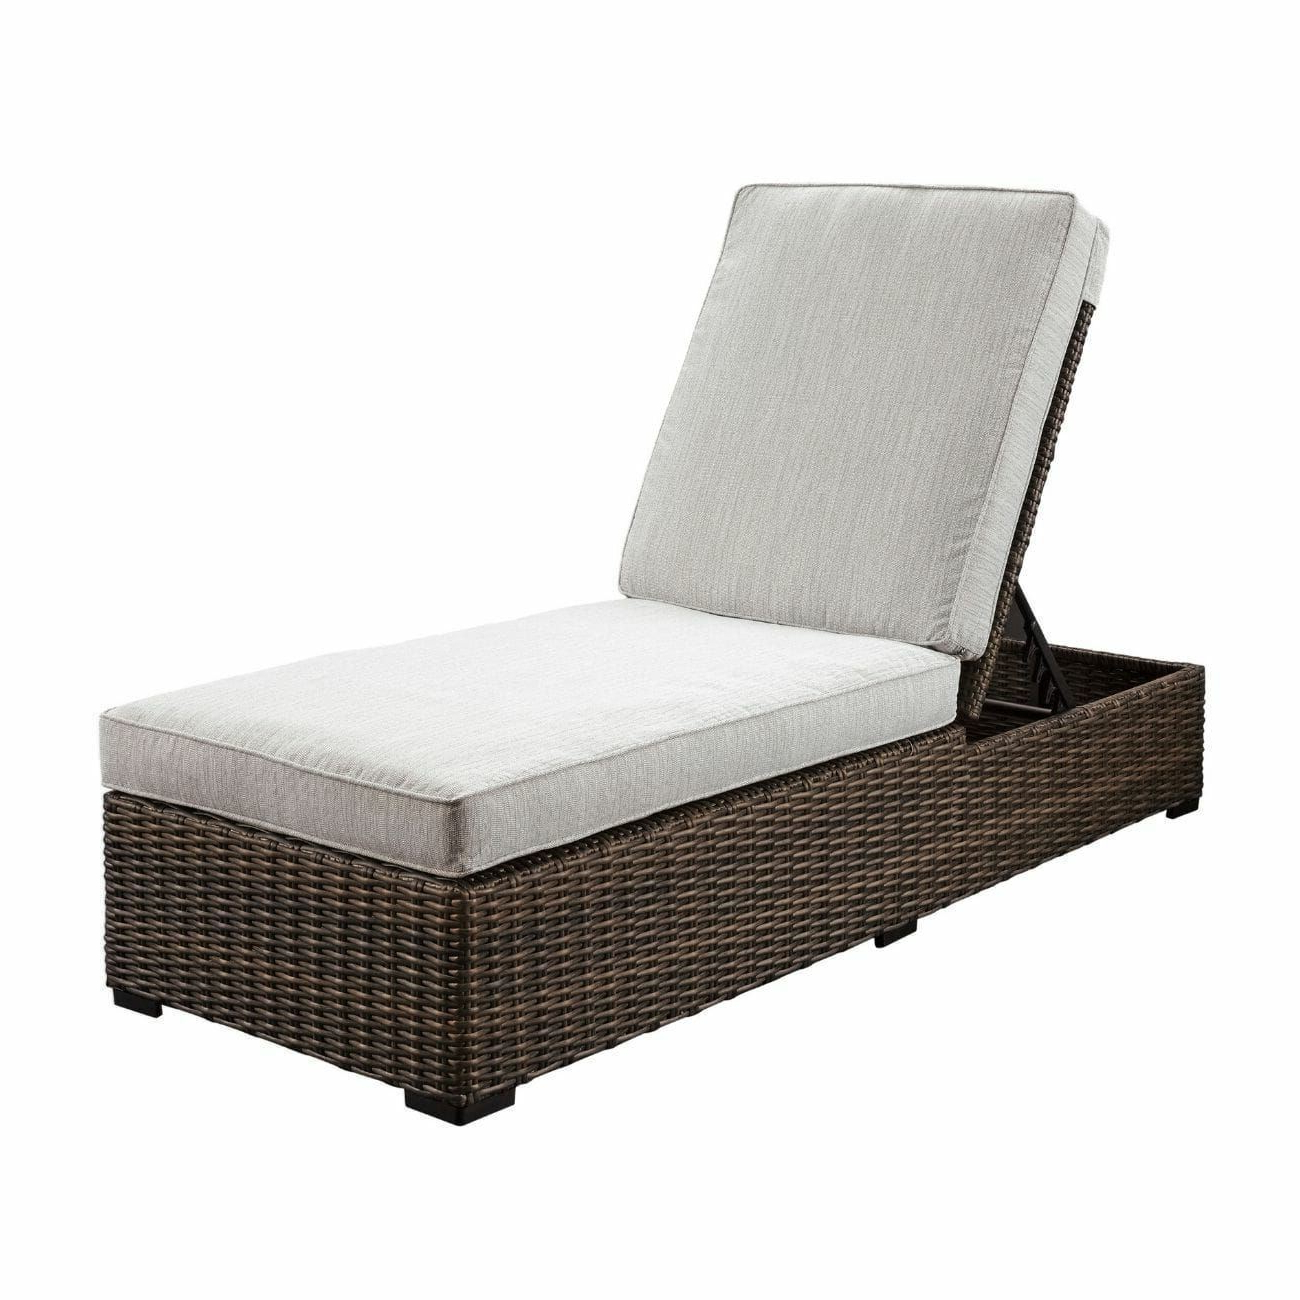 Outdoor Adjustable Reclining Wicker Chaise Lounges Within Popular Alta Grande Outdoor Chaise Lounge (View 16 of 25)